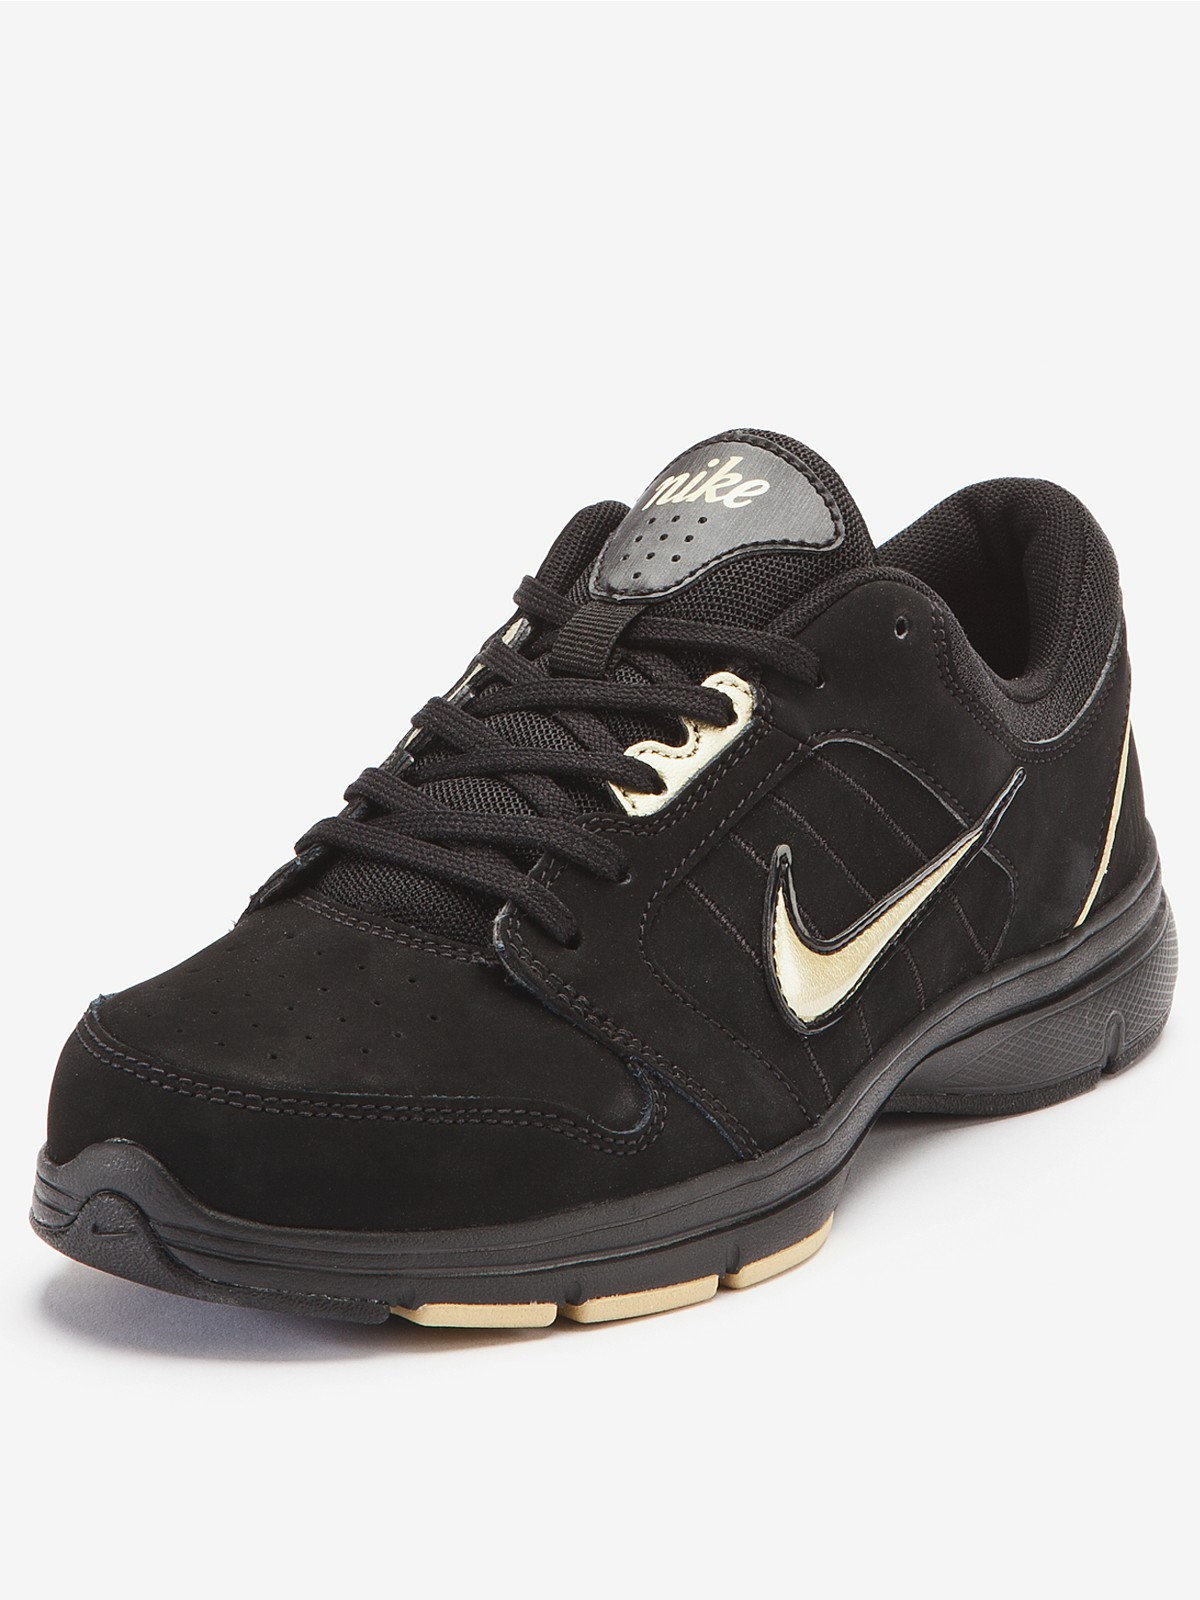 Black Women Leather Nike Support Shoes